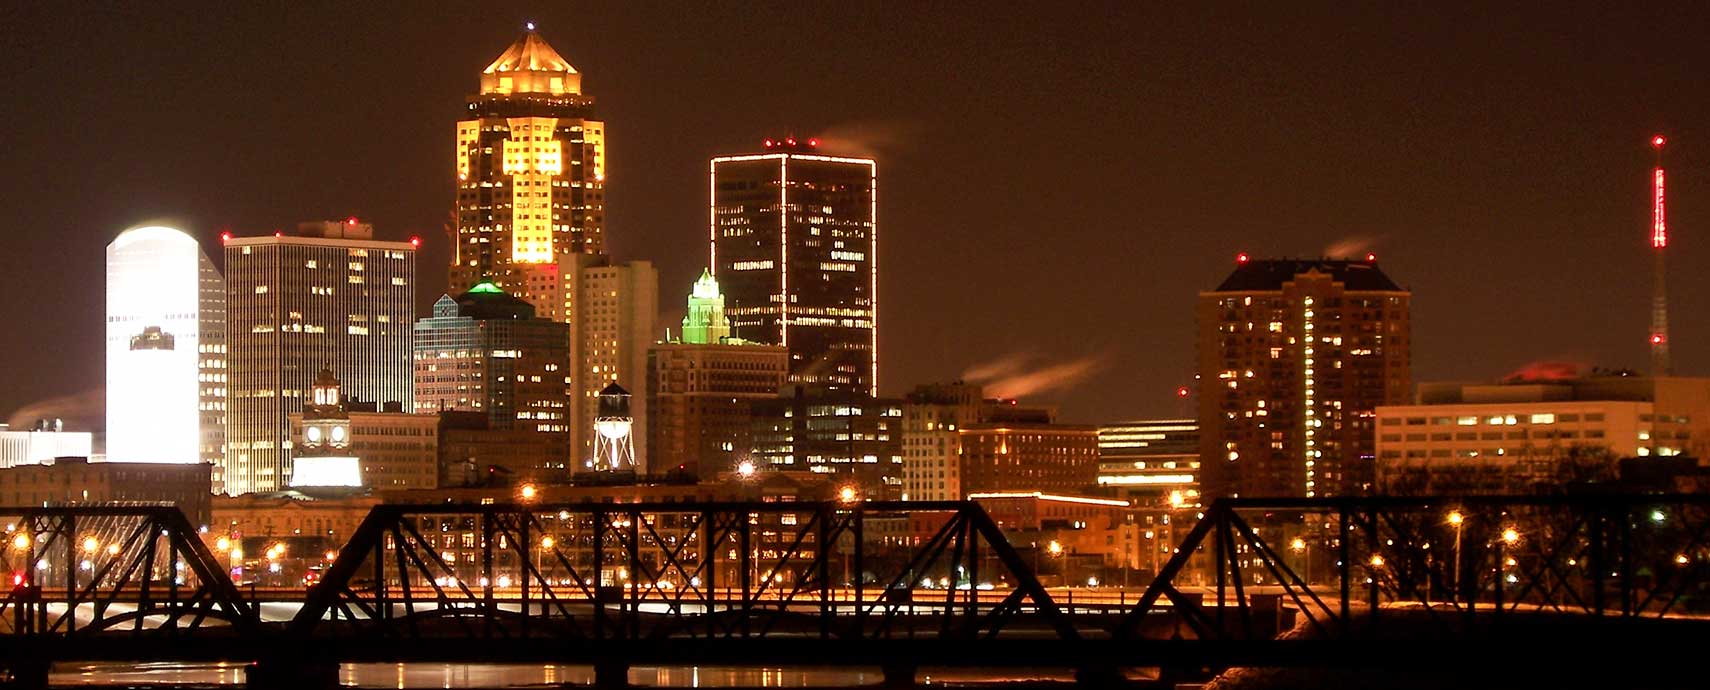 Des Moines, Iowa skyline at night